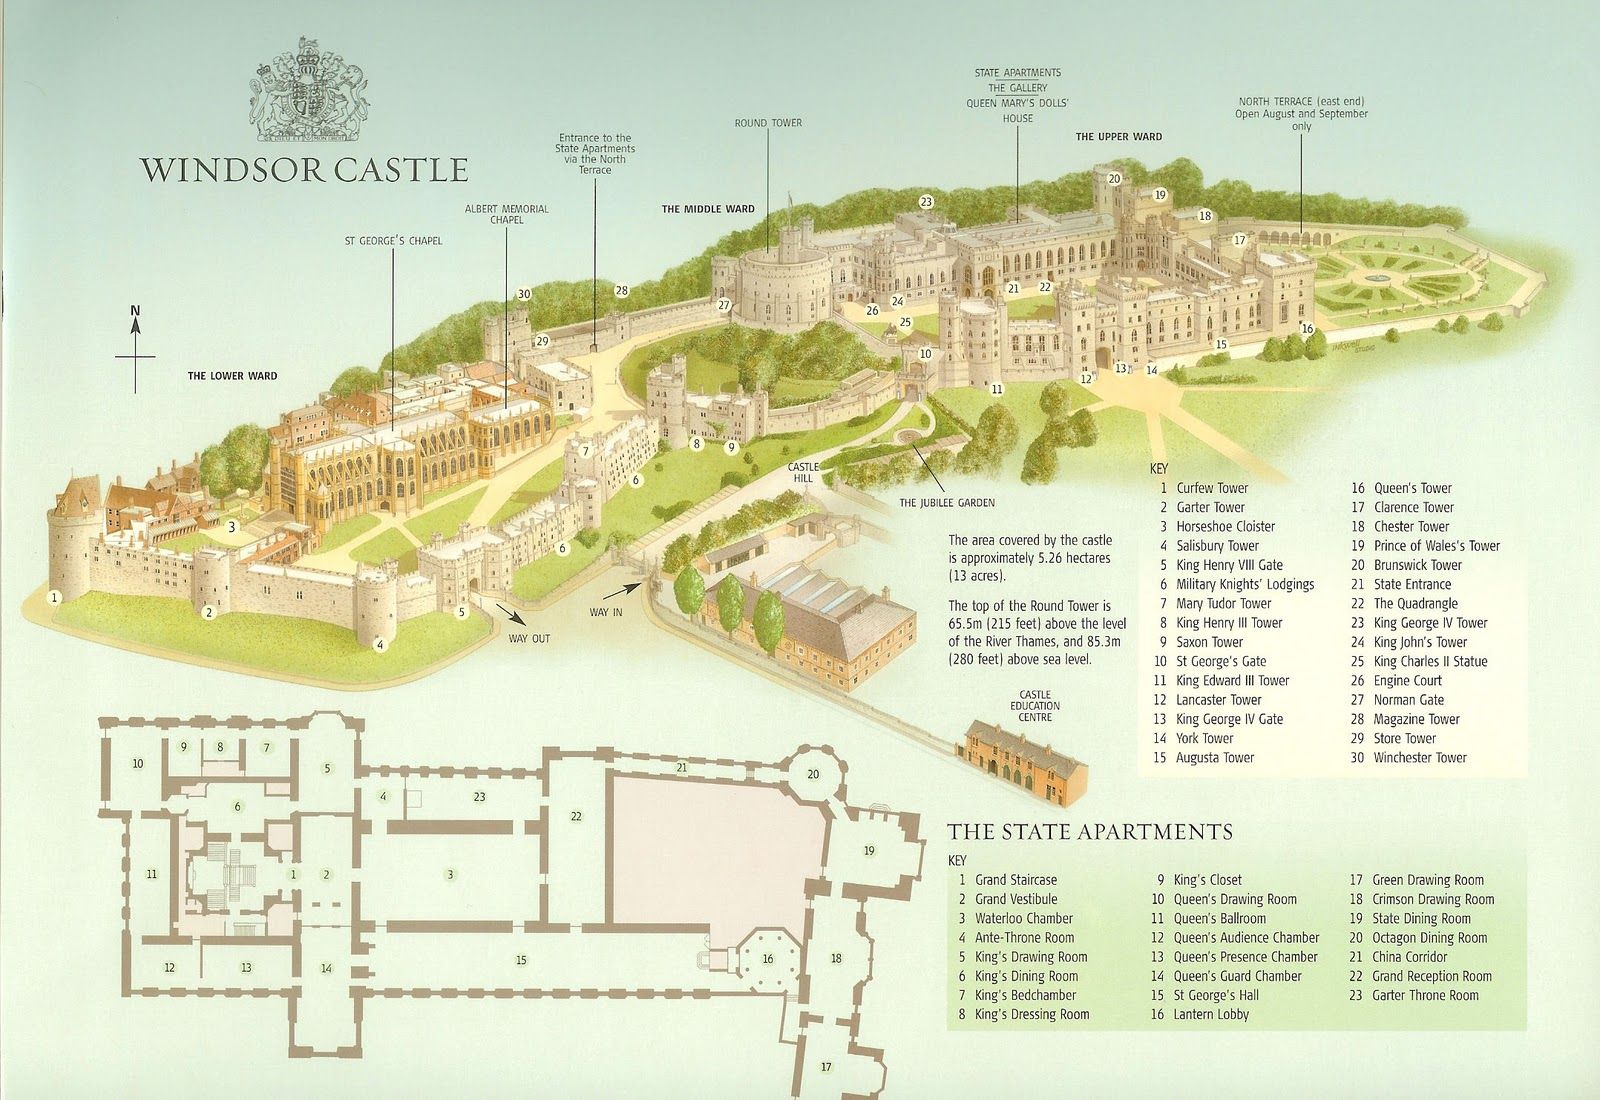 Everything And Nothing Off To London To See The Queen Part 4 Windsor Castle Map Castle Plans Castle Layout